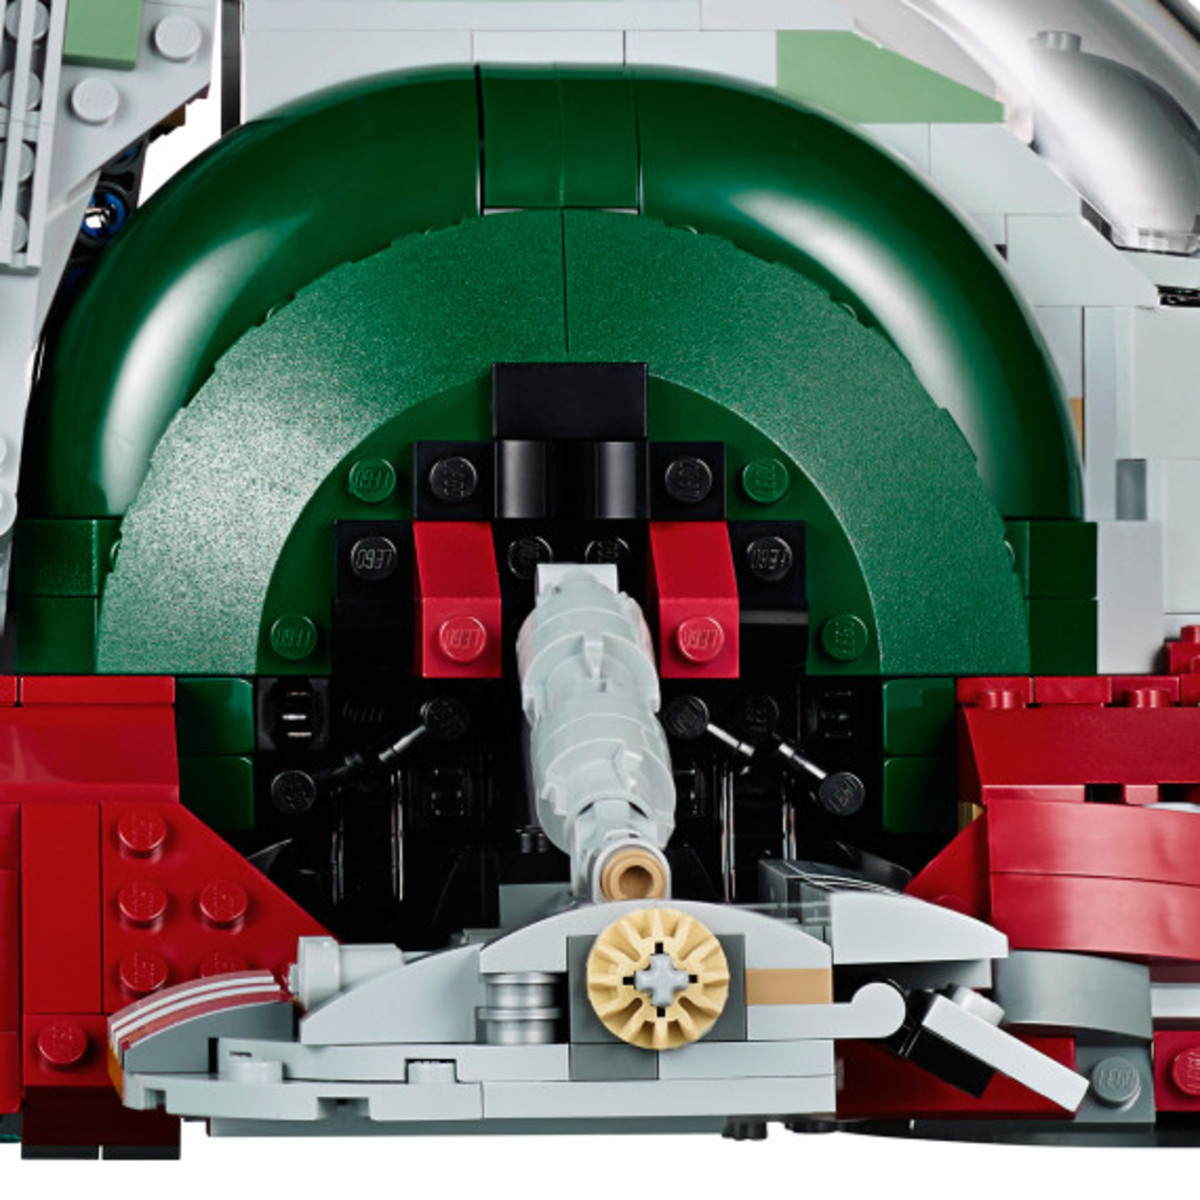 Star Wars x LEGO Ultimate Collector's Series: Boba Fett's Slave I Kit | Release Info - 13